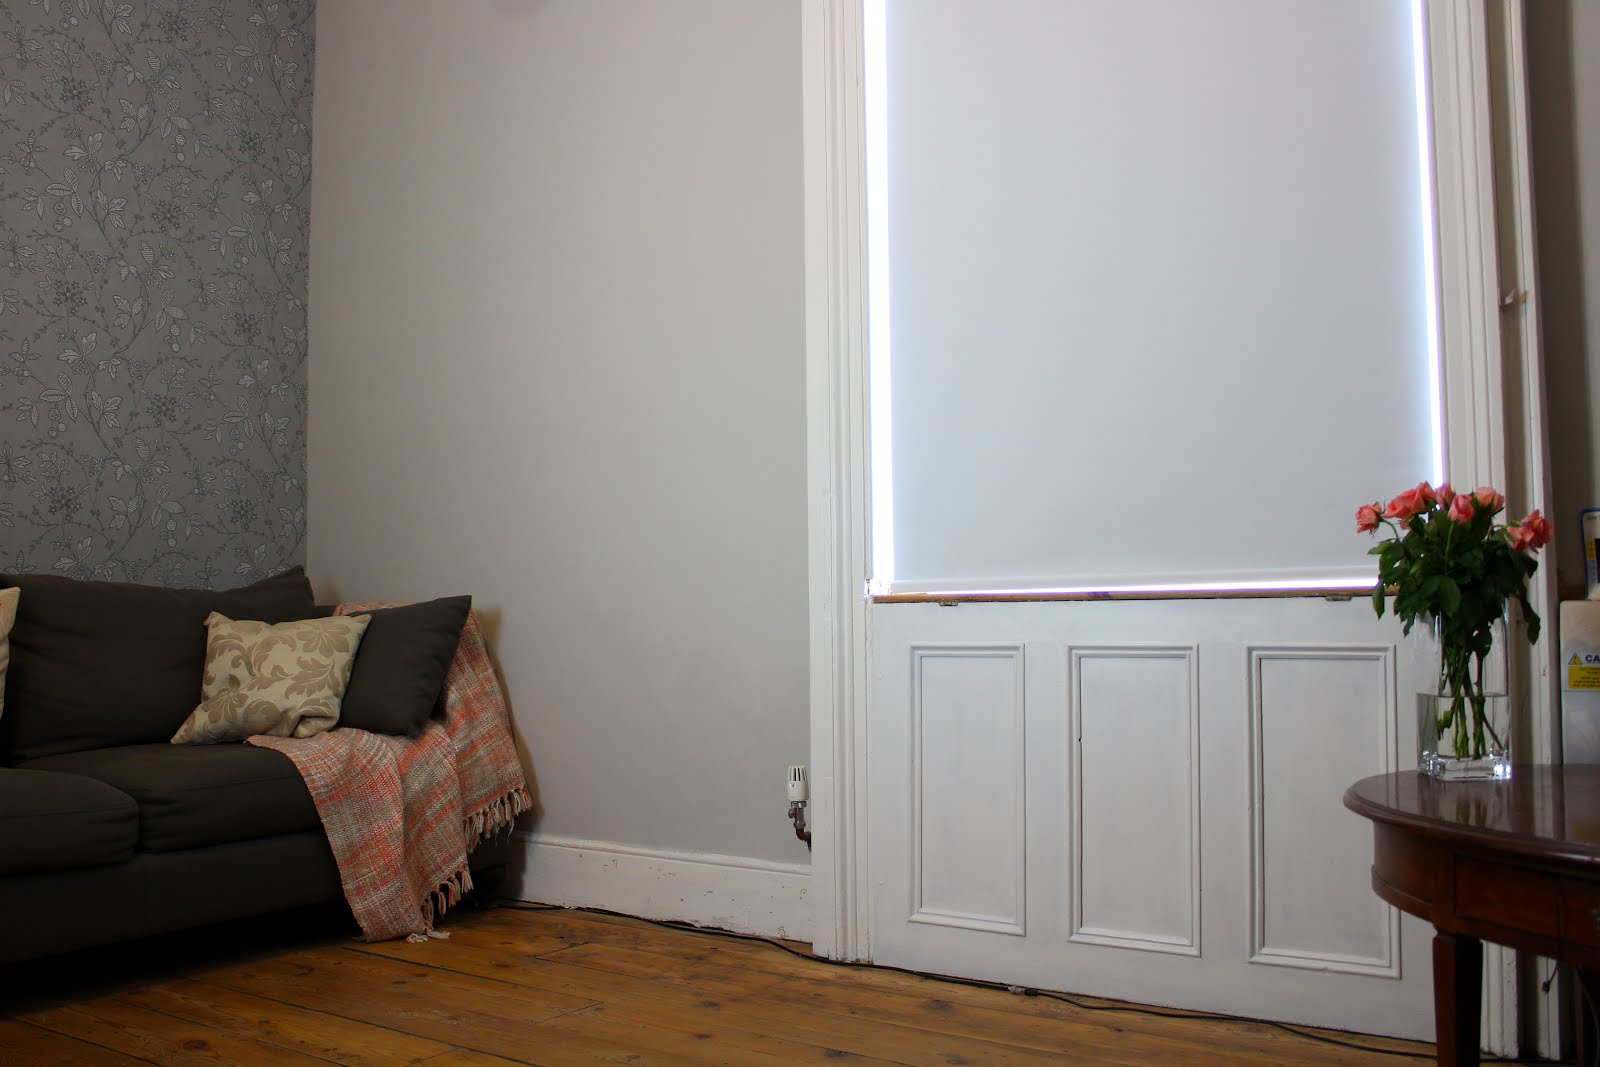 Black Out Electric Blind in Living Room